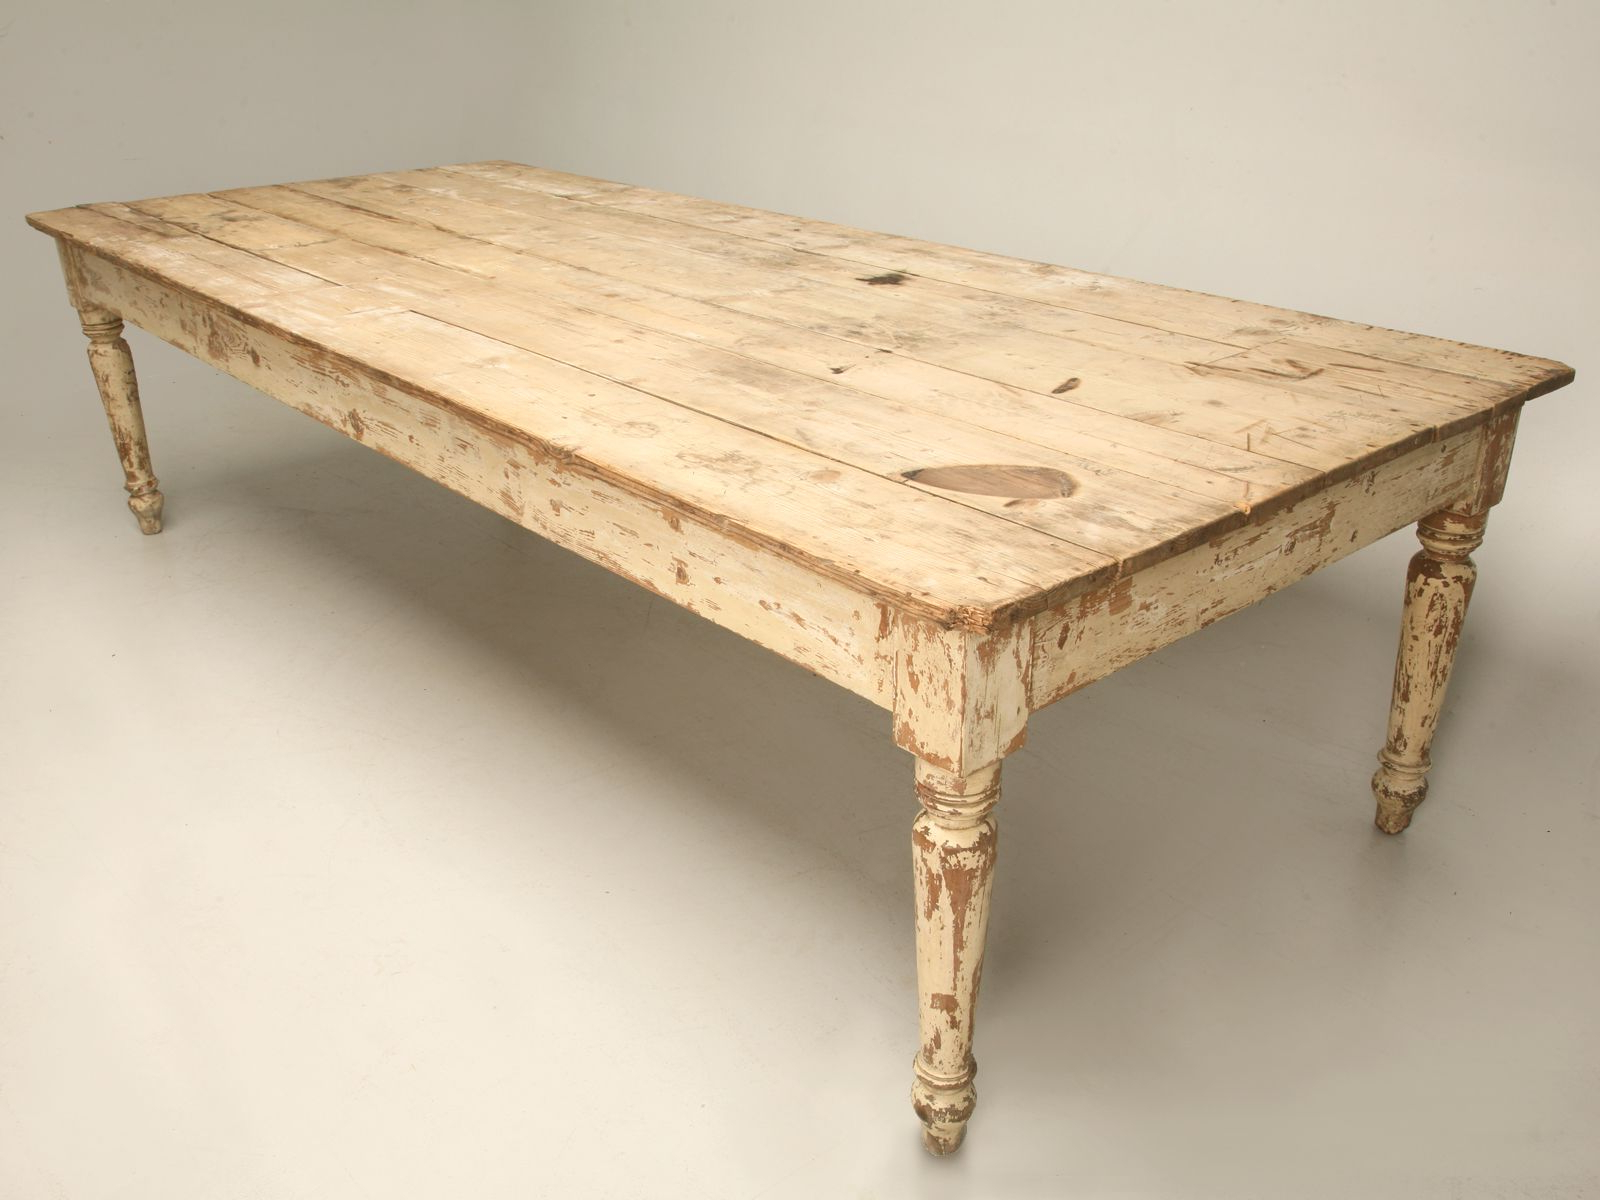 Antique Scrubbed Pine Farm Table (View 6 of 30)